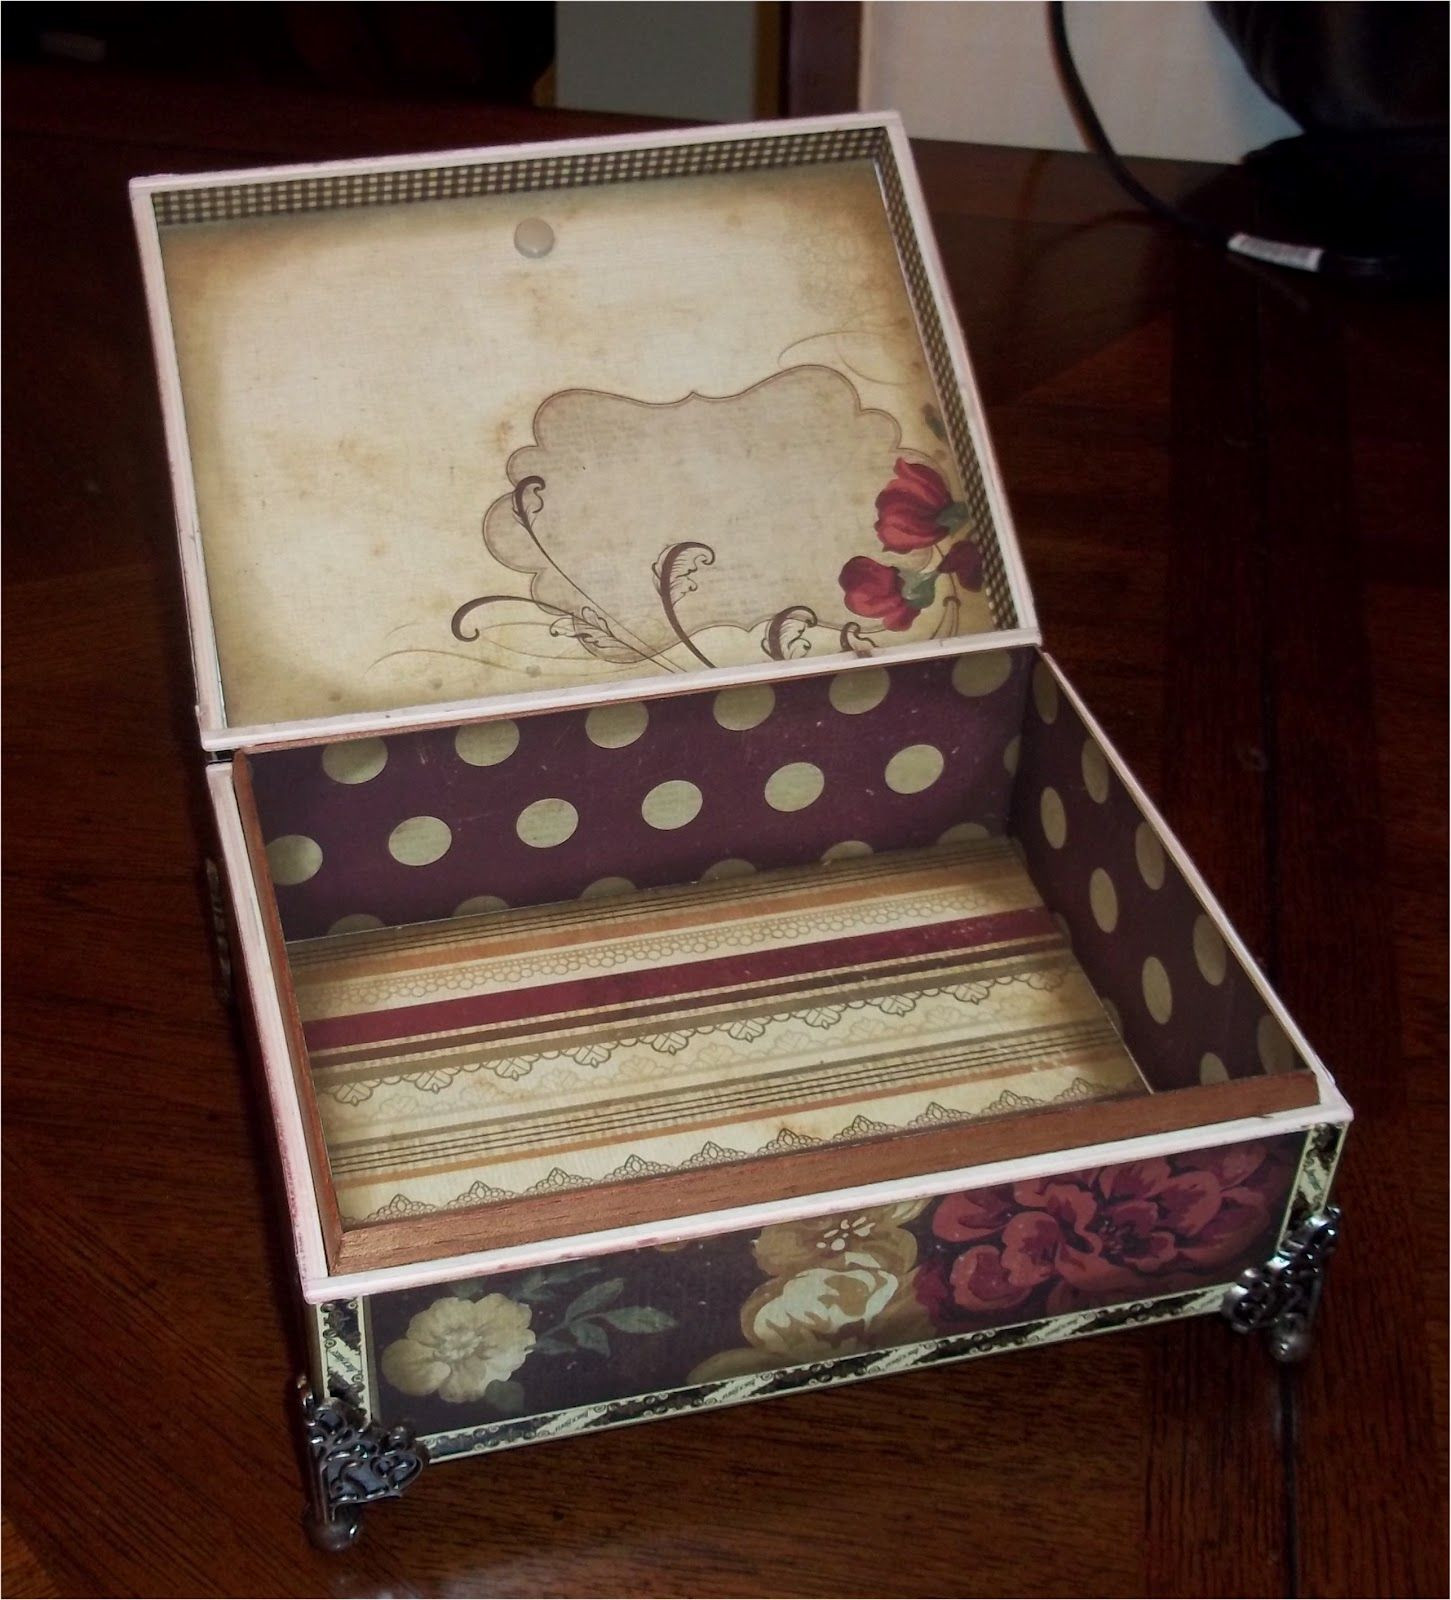 Best ideas about Cigar Box Craft Ideas . Save or Pin beautiful cigar boxes Cigar box ideas Now.